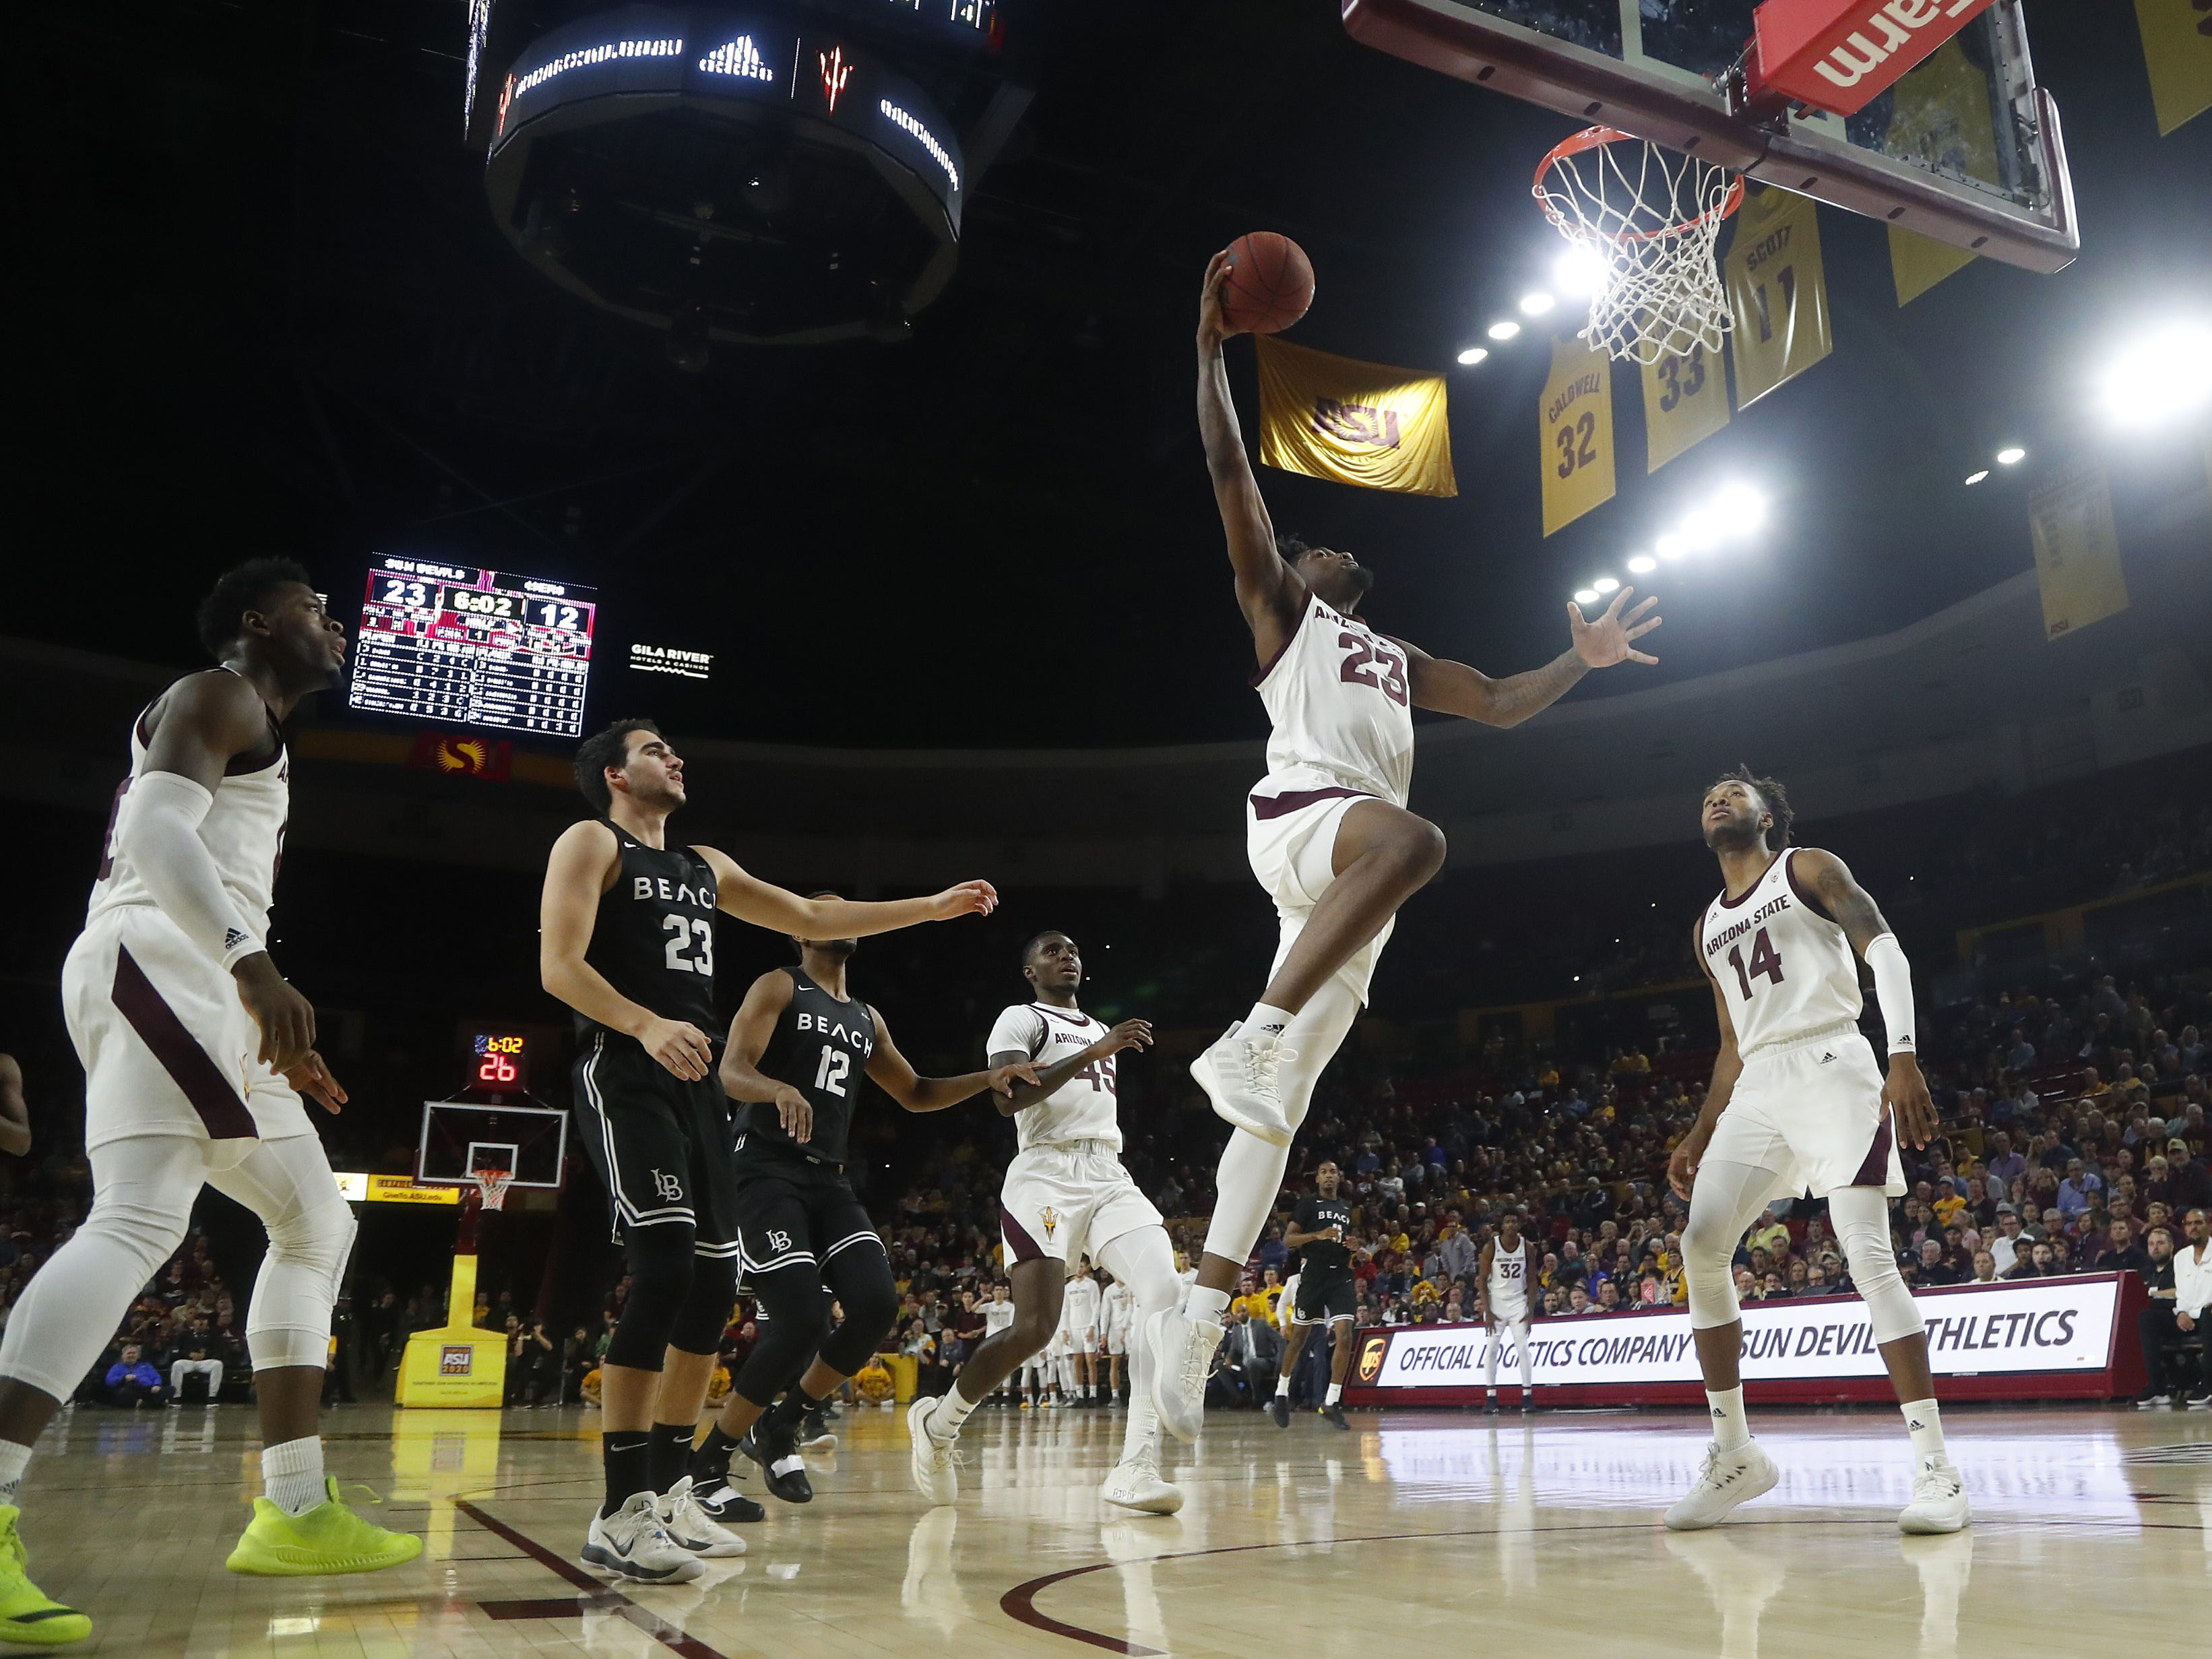 Arizona State's Romelo White (23) drunks the ball against Long Beach State during the first half at Wells Fargo Arena in Tempe, Ariz. on November 12, 2018.